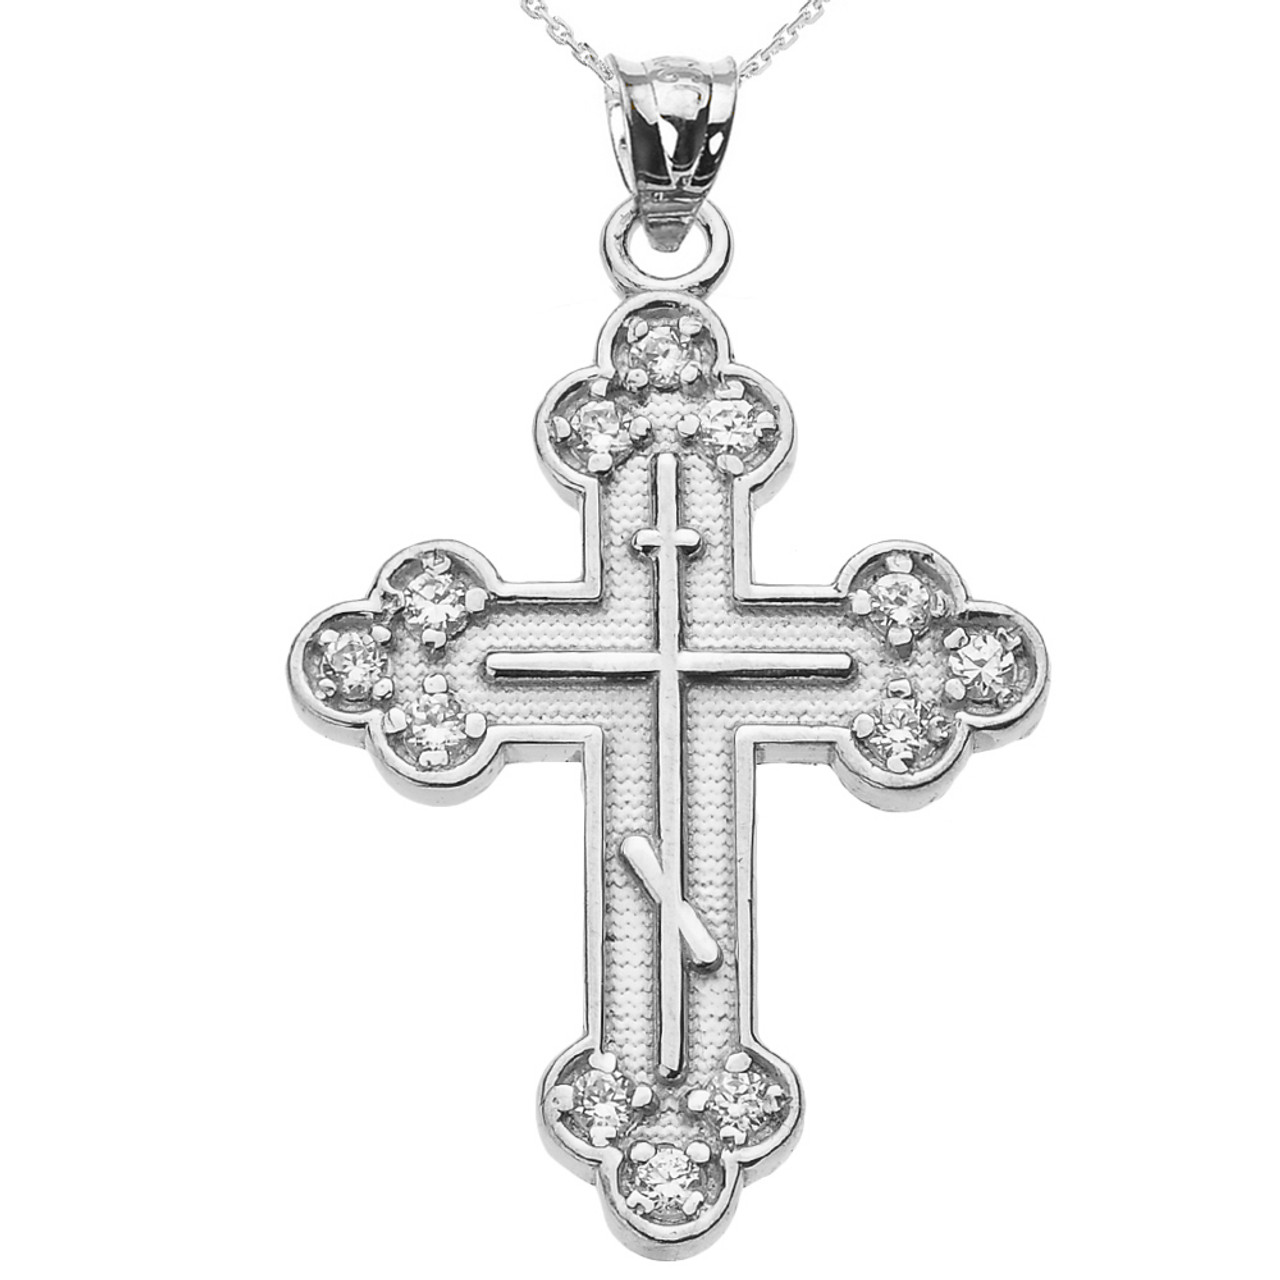 White gold diamond eastern orthodox cross pendant necklace aloadofball Image collections